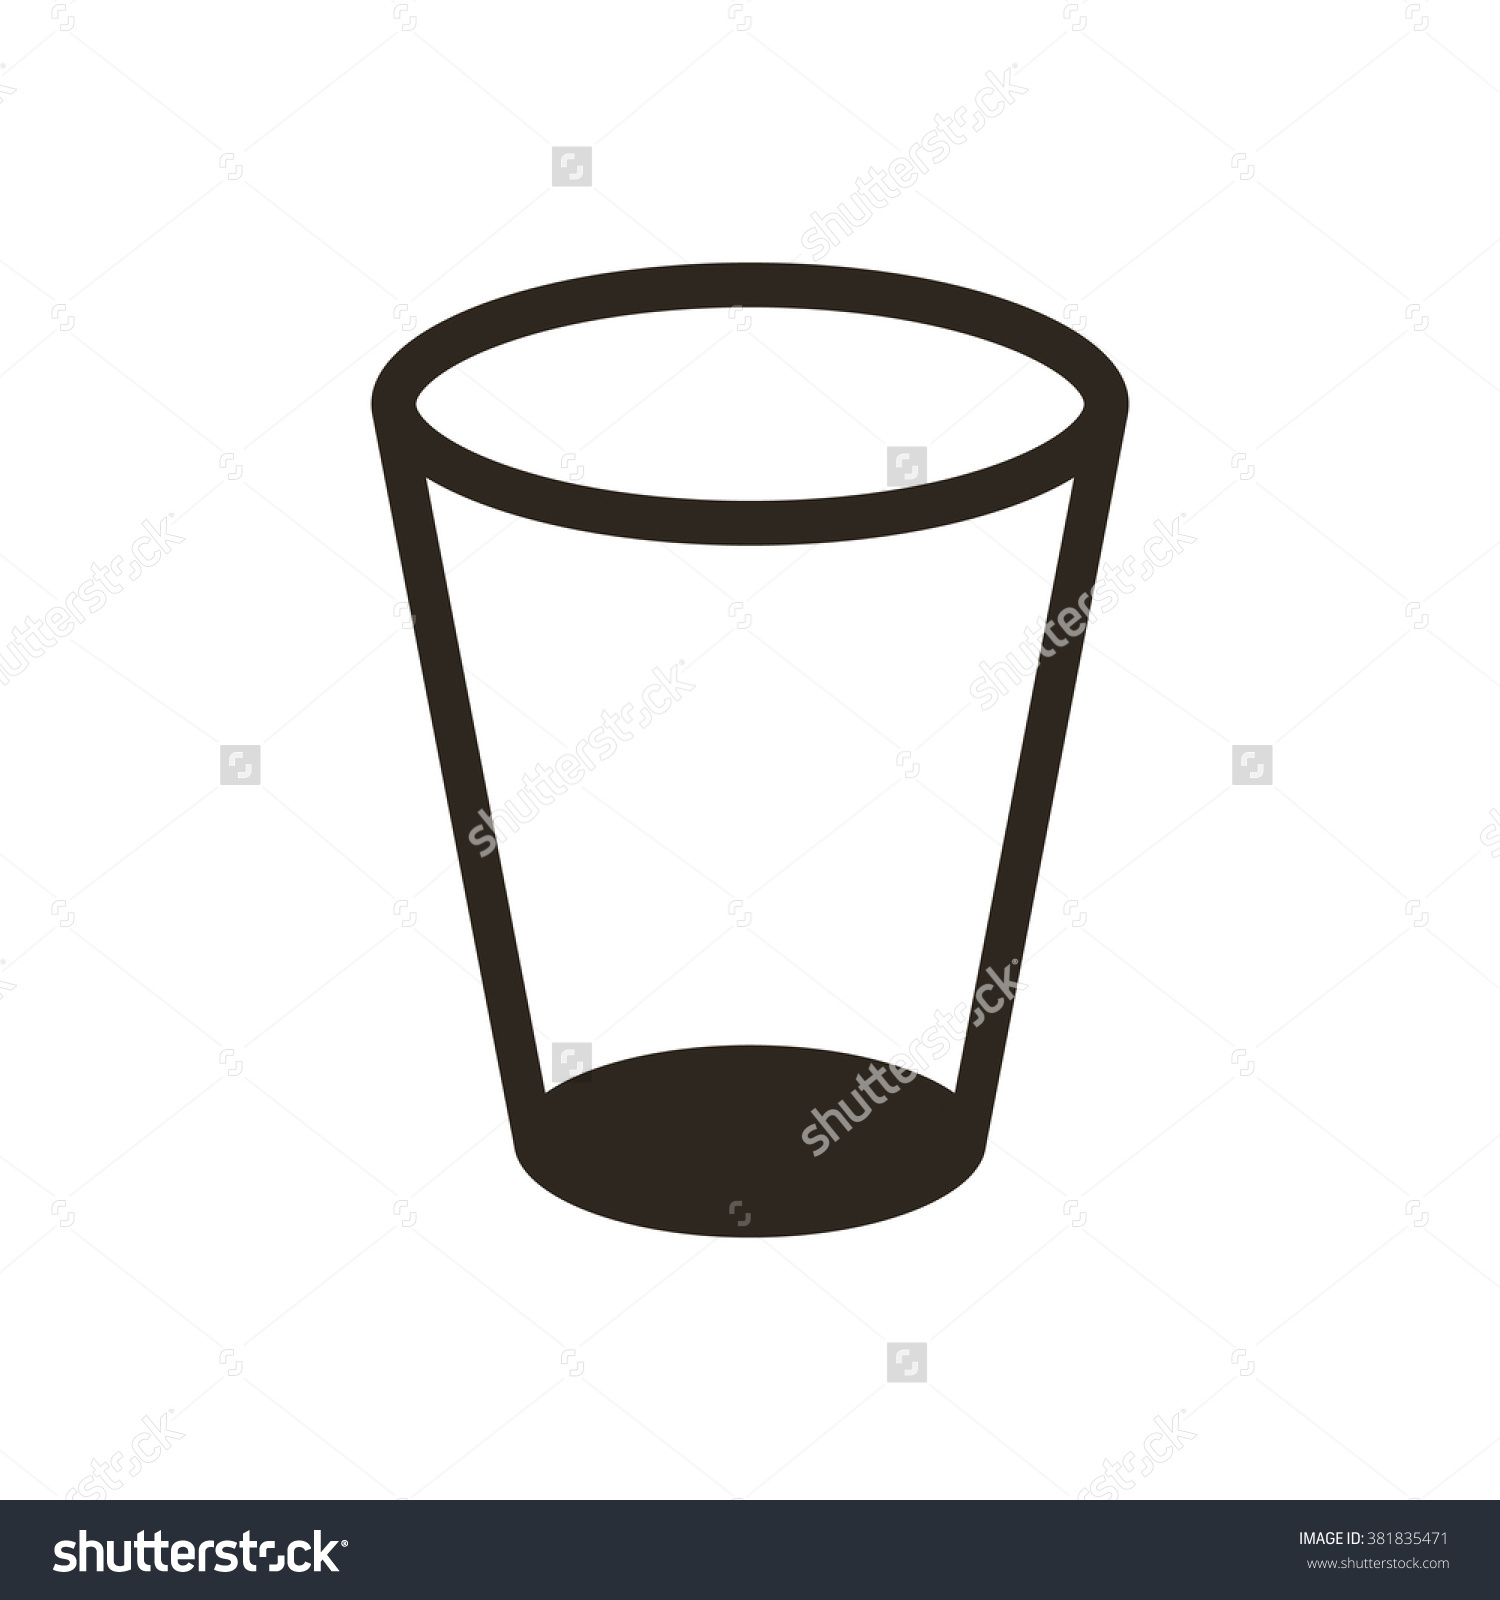 Stock Photo : Shutterstock. Stock Photo : Shutterstock. Preview Clipart